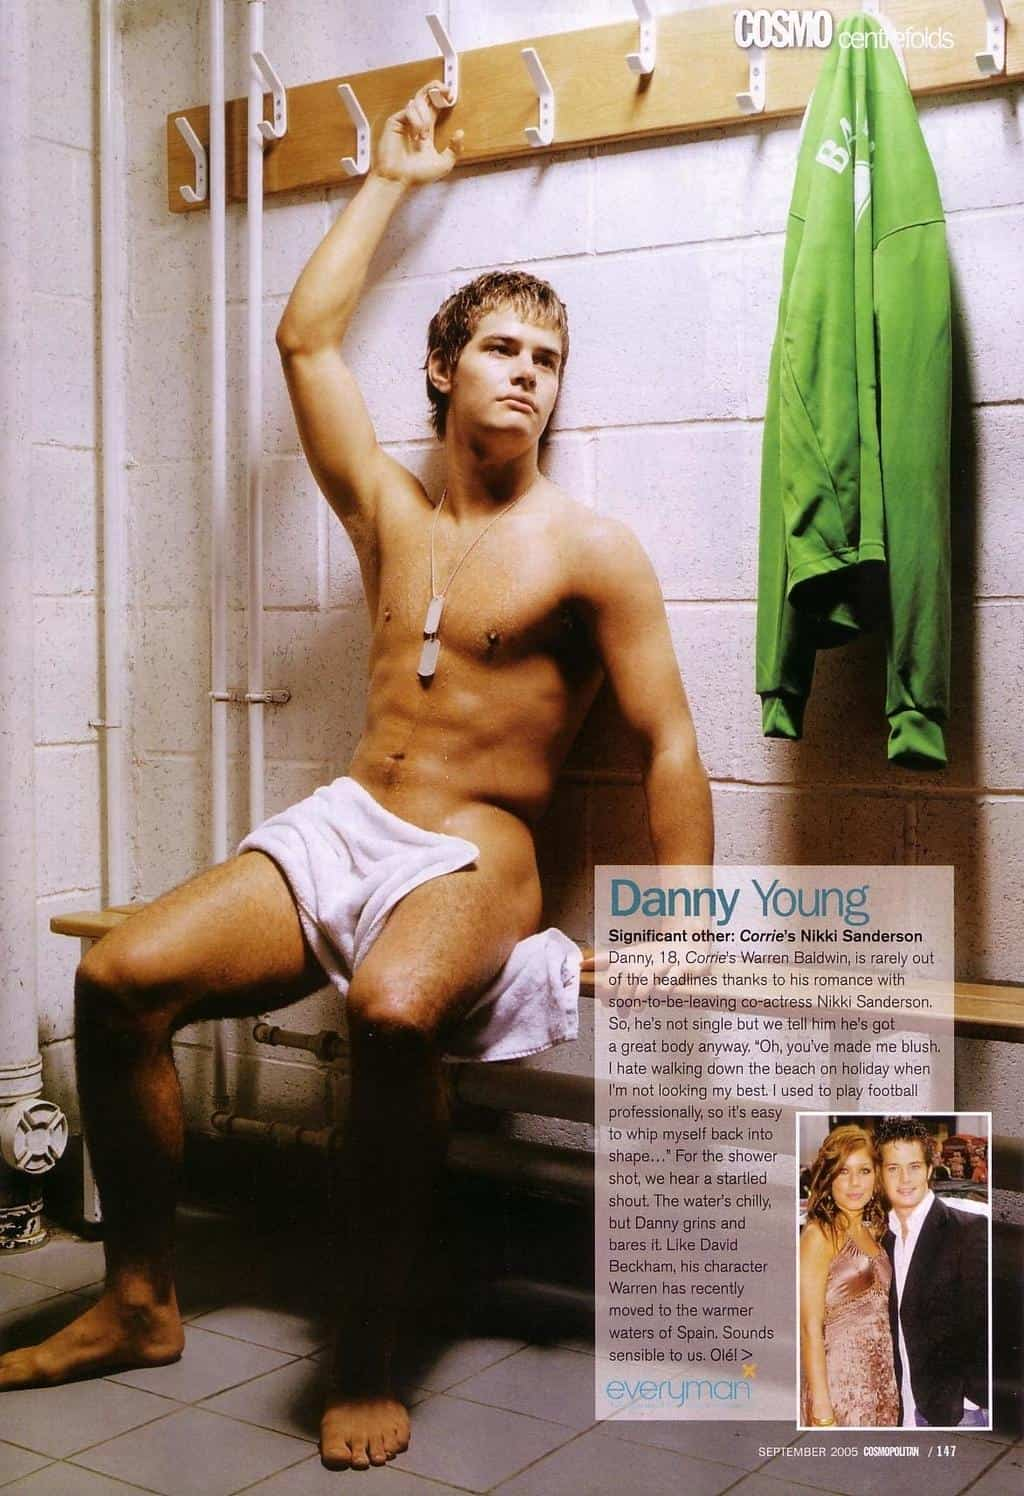 Danny Young in Cosmo Centrefold image